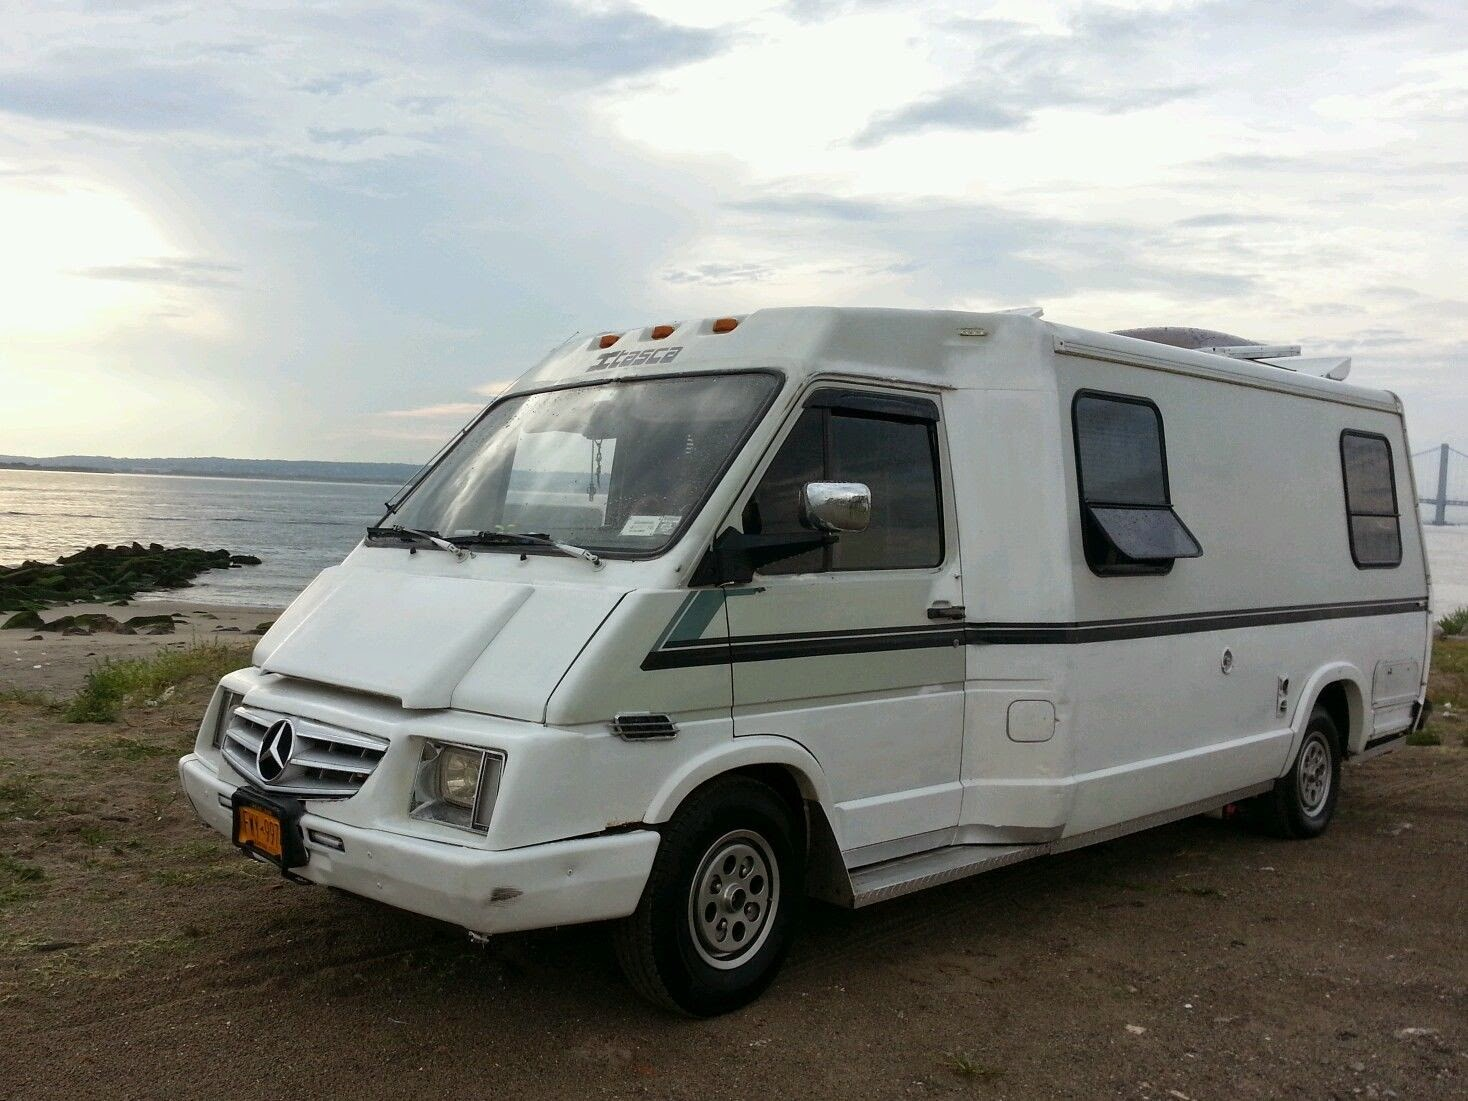 motorhome for sale near me blogs workanyware co uk u2022 rh blogs workanyware co uk